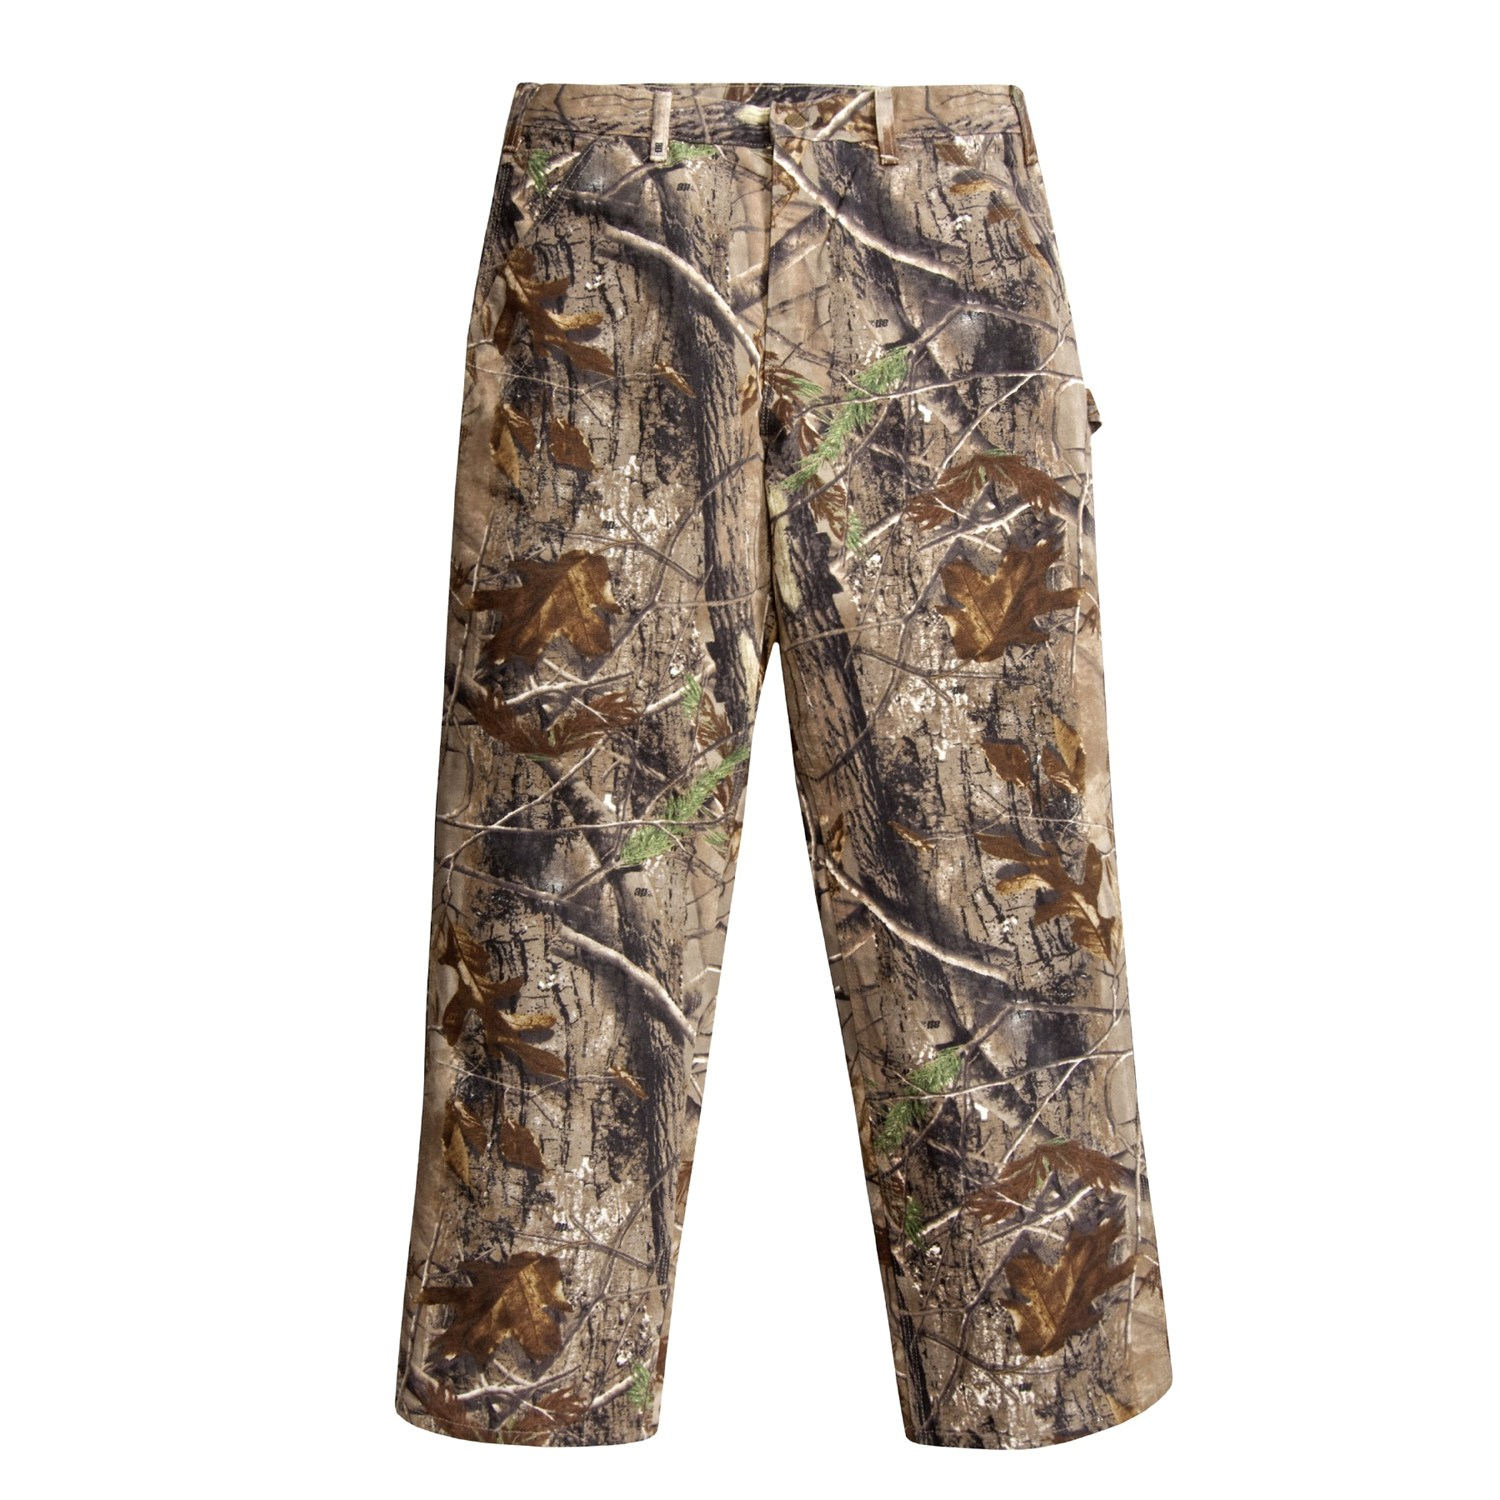 Free Pickup + Discount. FREE Pickup. FREE Pickup Today. Brand. Mossy Oak. Realtree. QuietWear. Tactical. Browning. Arctic Shield. Ladies Camouflage. Showing 40 of results that match your query. Search Product Result. Women's Fleece Camouflage Pants, Available in Multiple Patterns. See Details. Product - Women's Long Sleeve Camo.